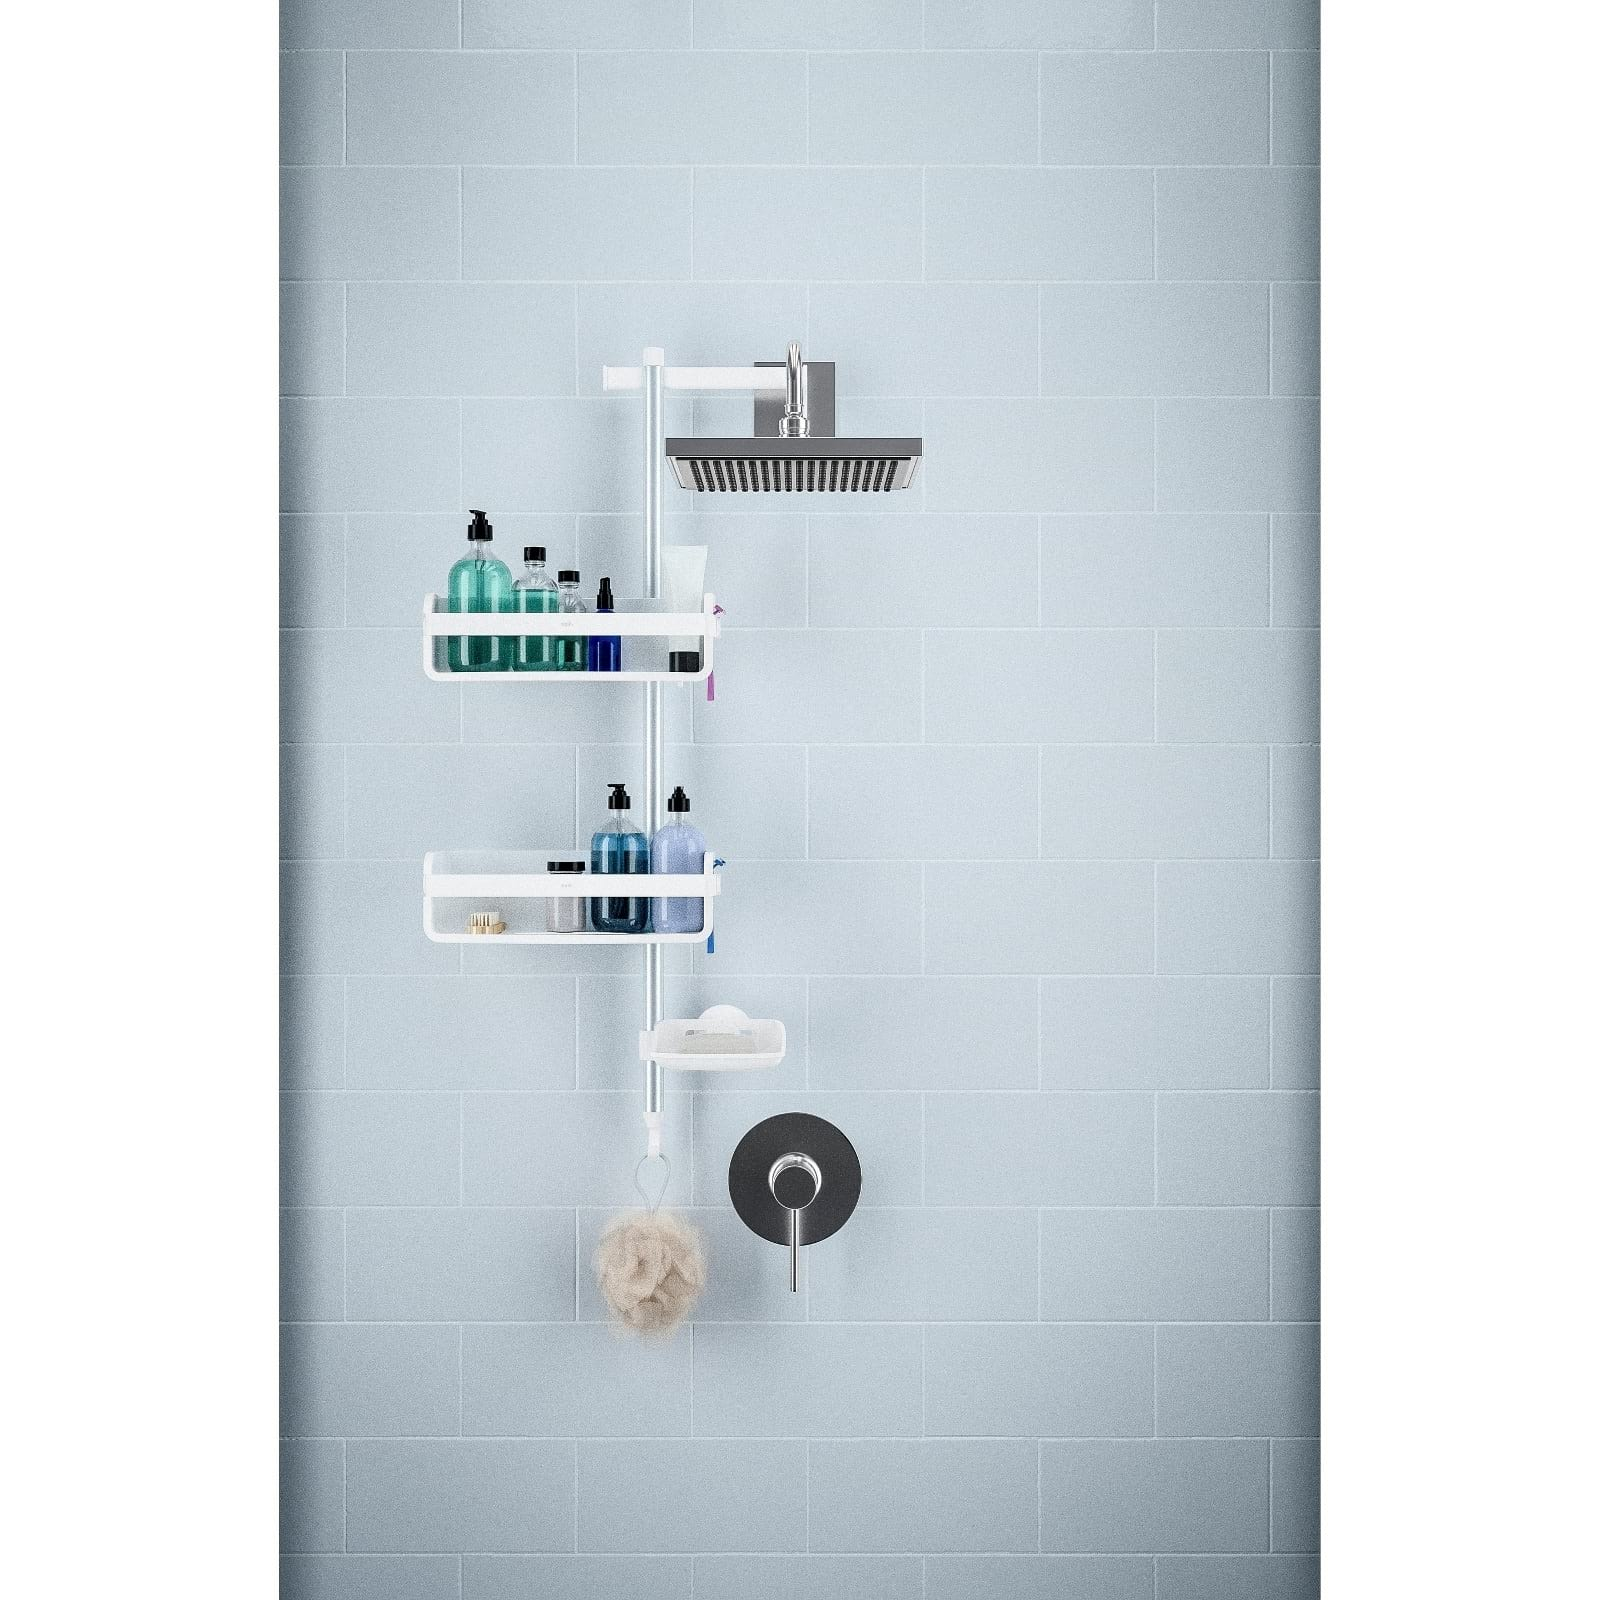 Umbra Flipside Pole Shower Caddy | Design Is This